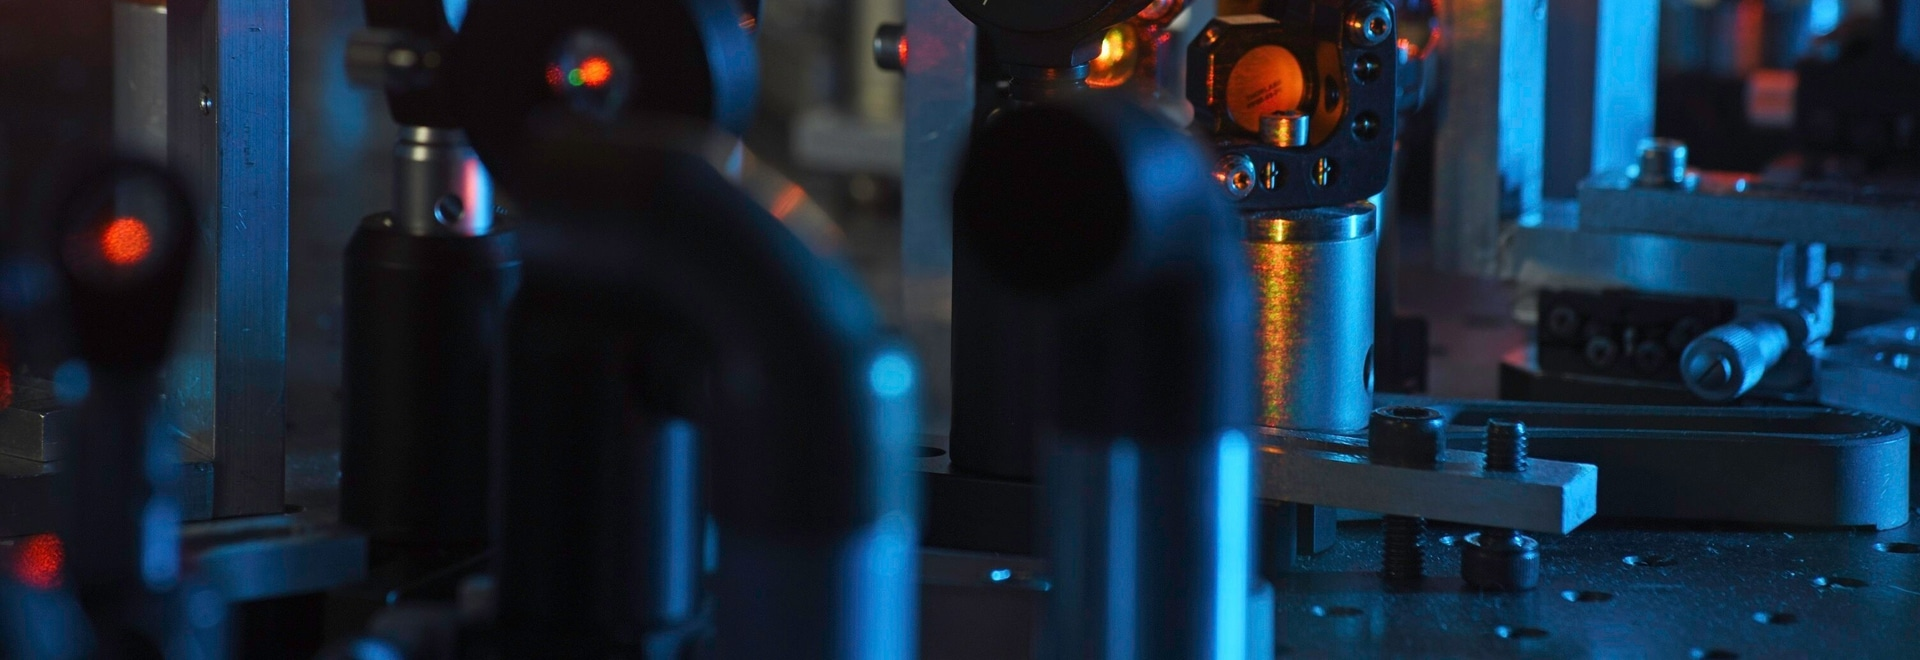 Ultrafast Laser System Suitable for Integration Into Microscopy Solutions